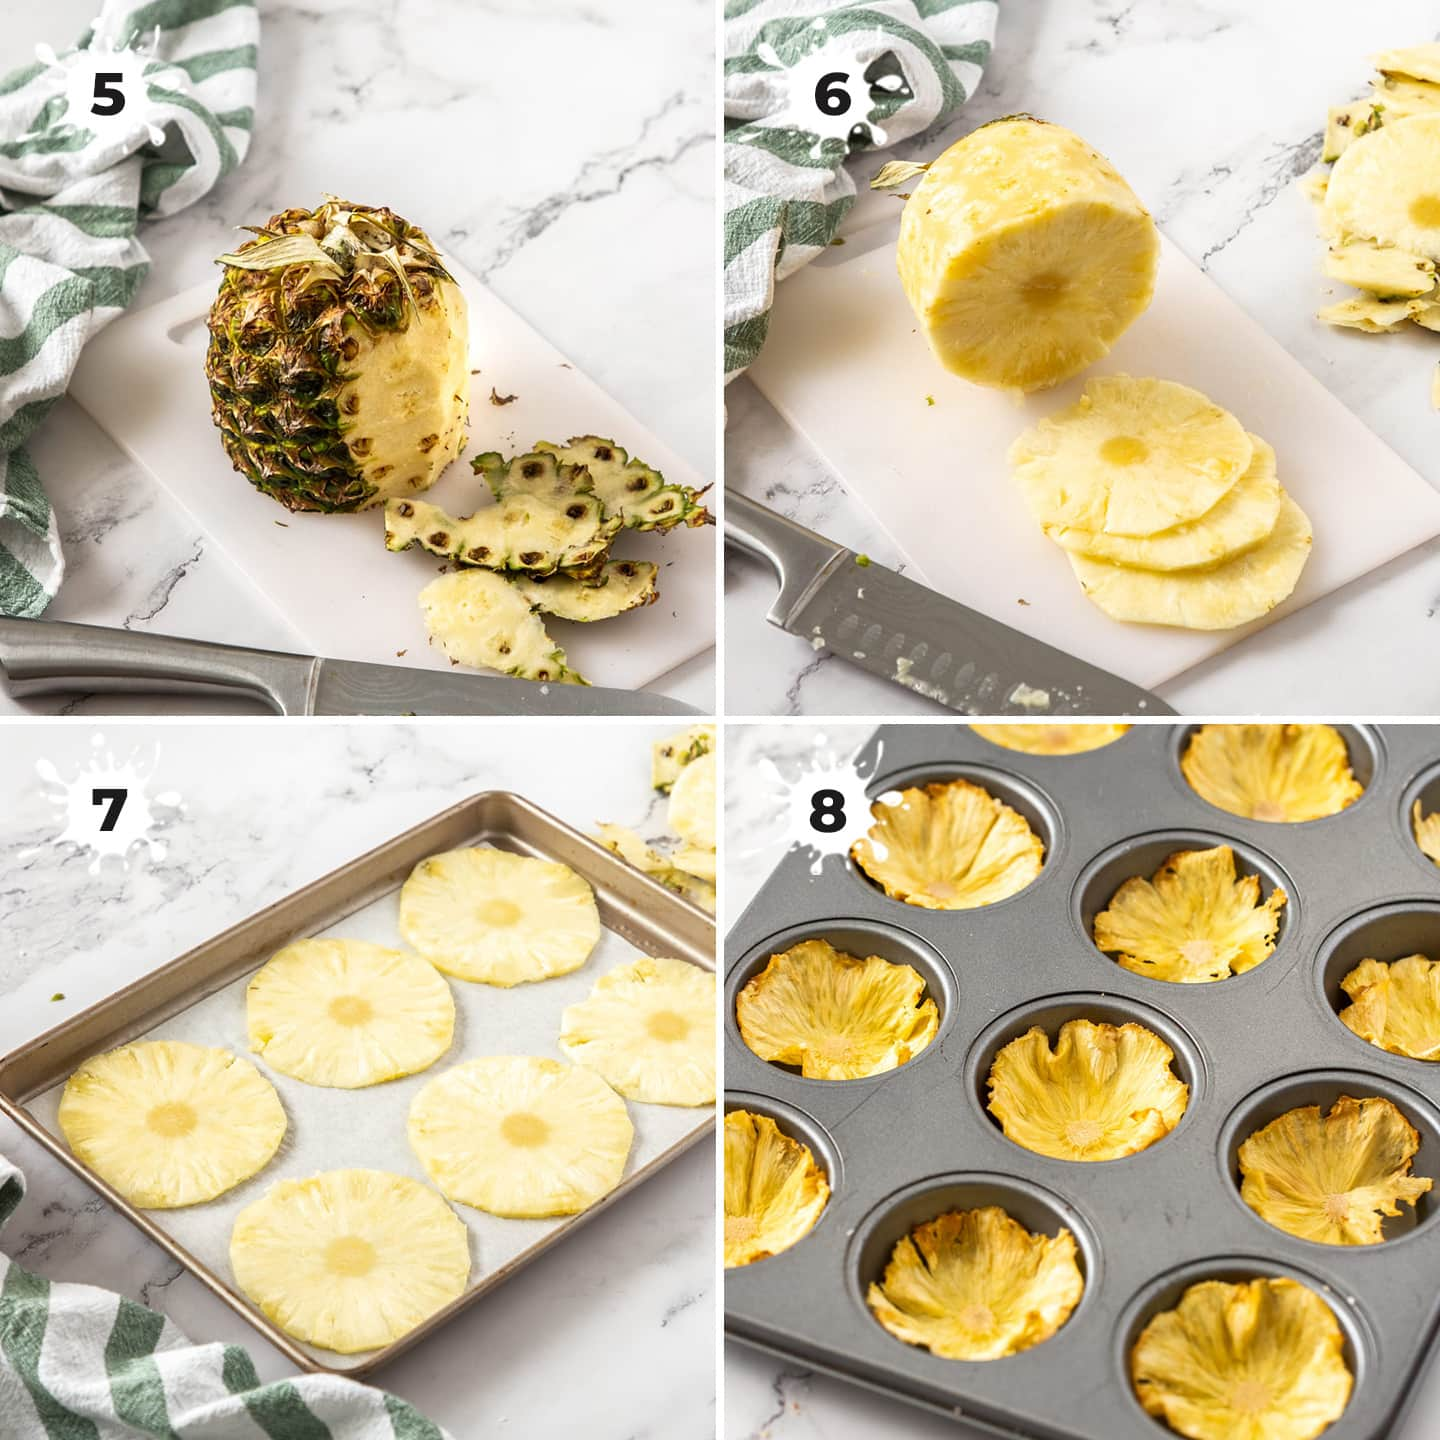 4 images showing how to make dried pineapple flowers